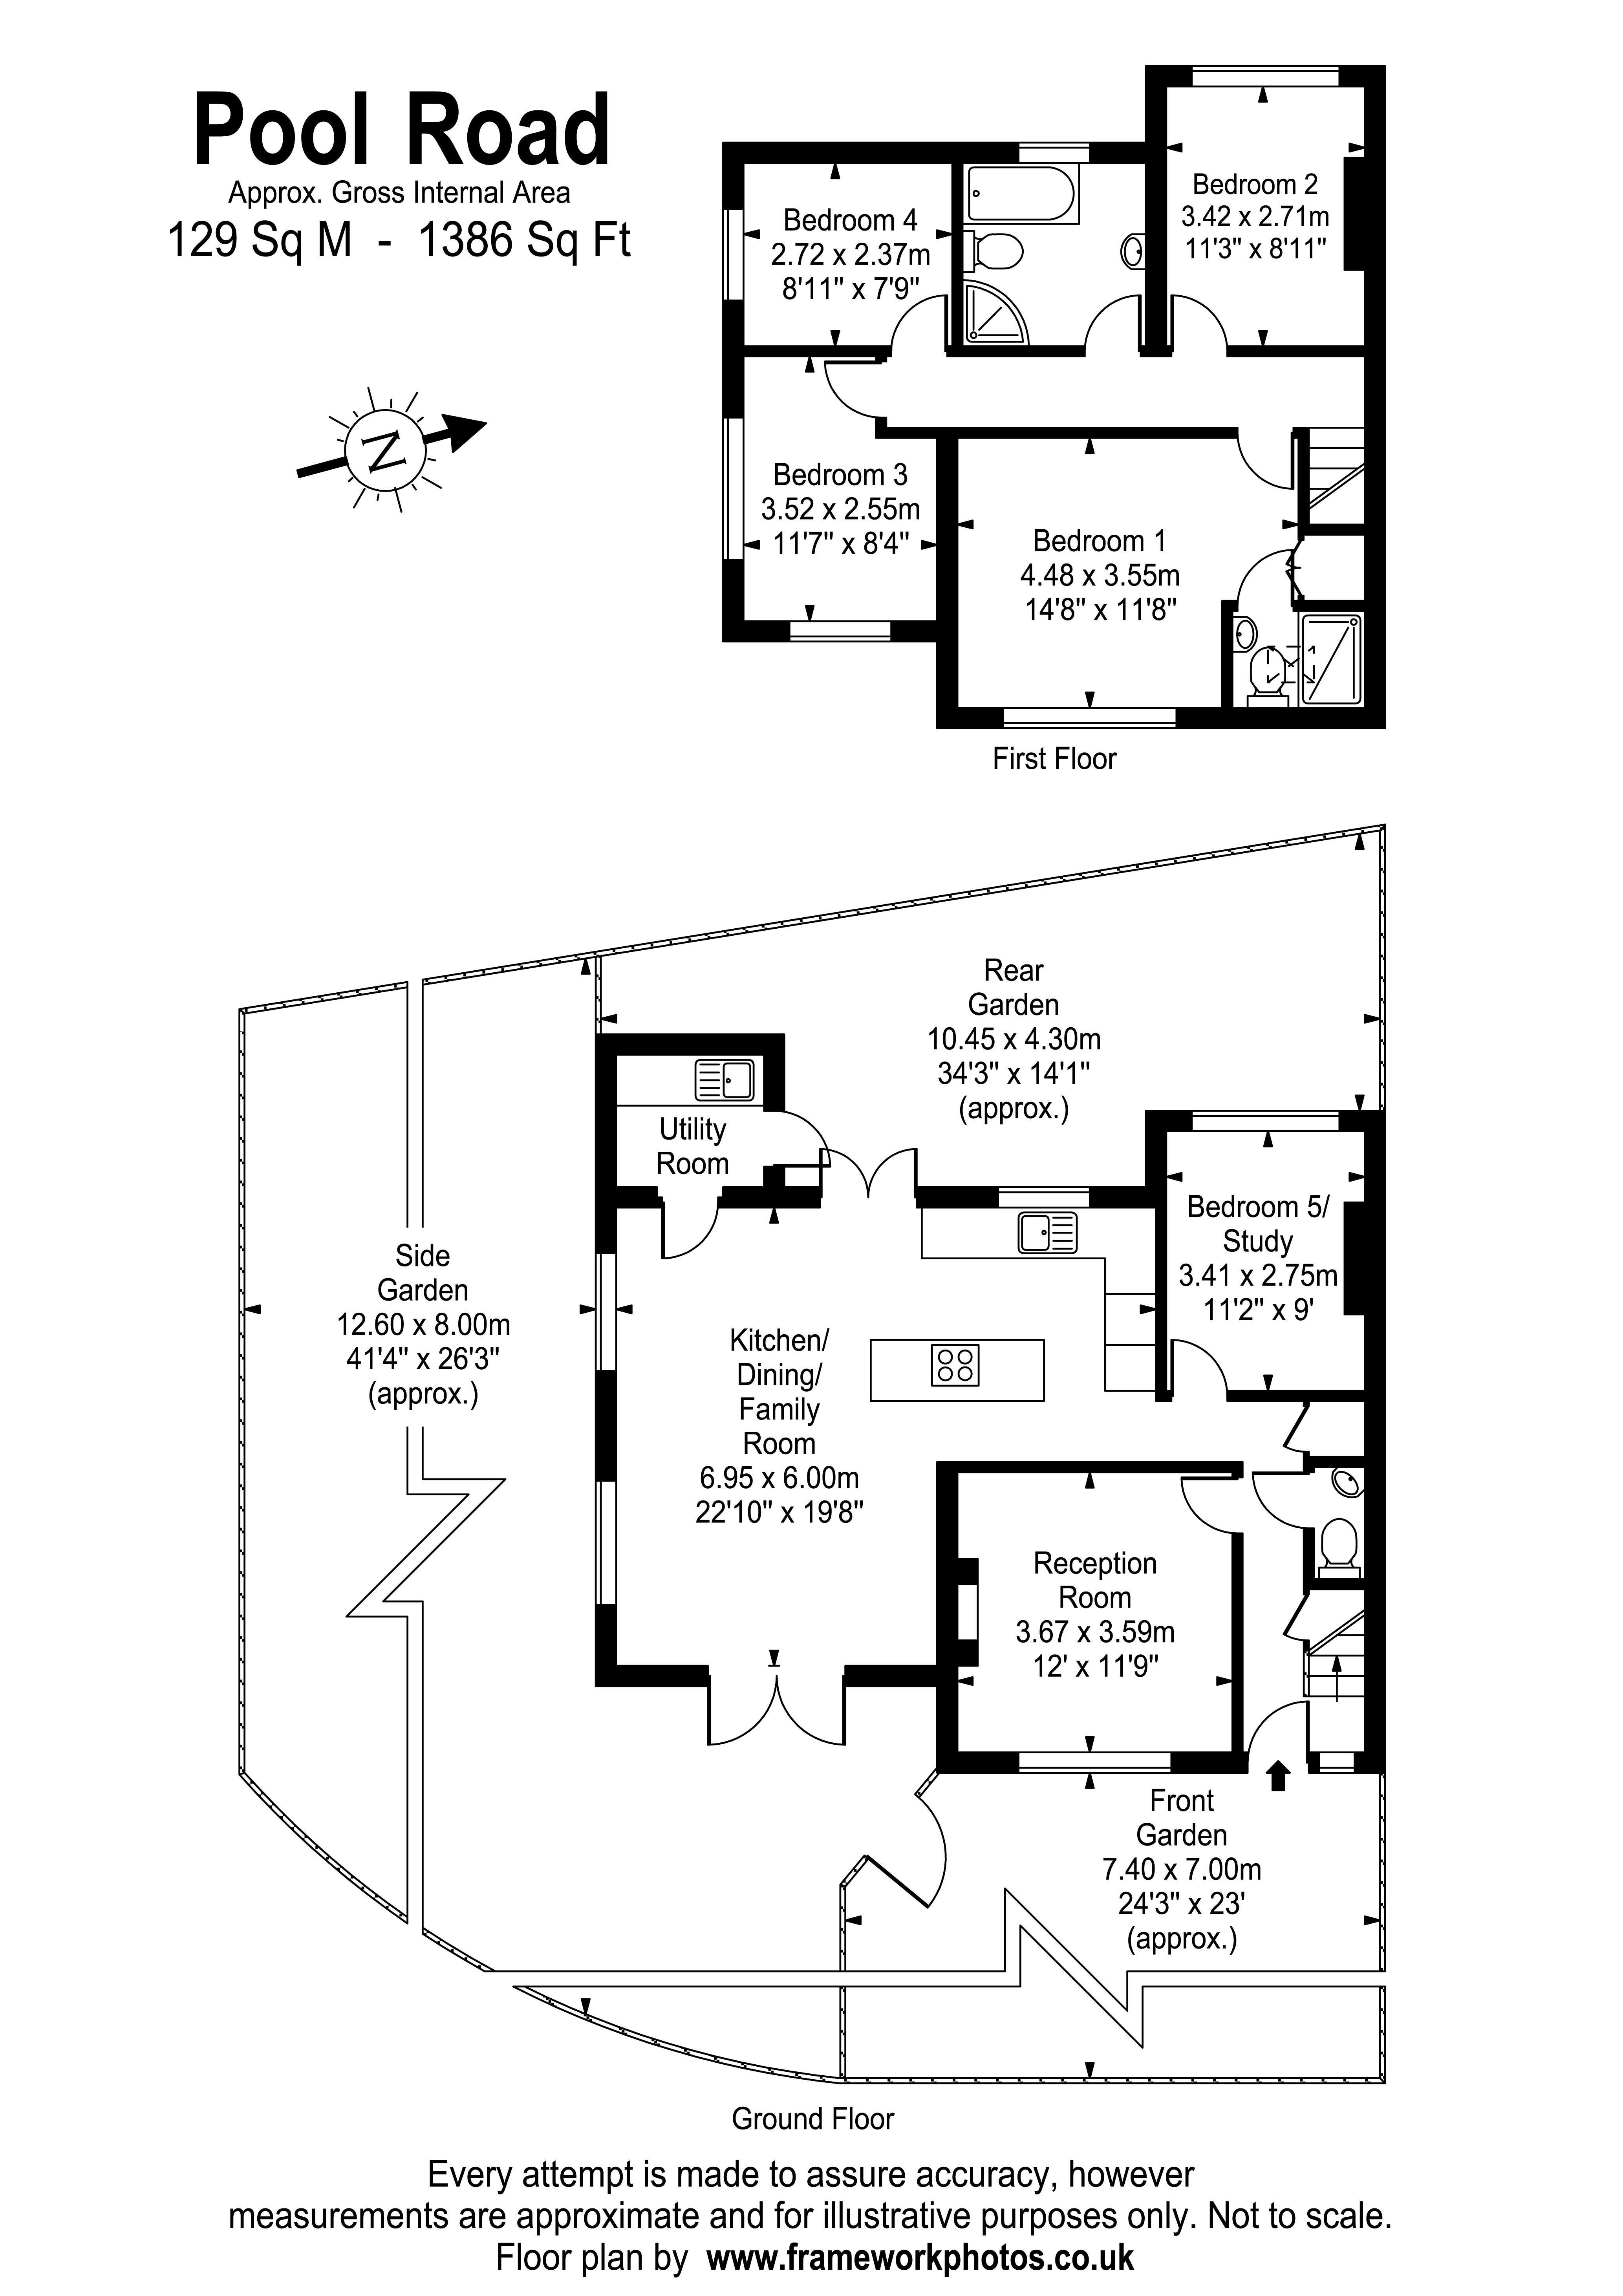 Floorplans For Pool Road, West Molesey